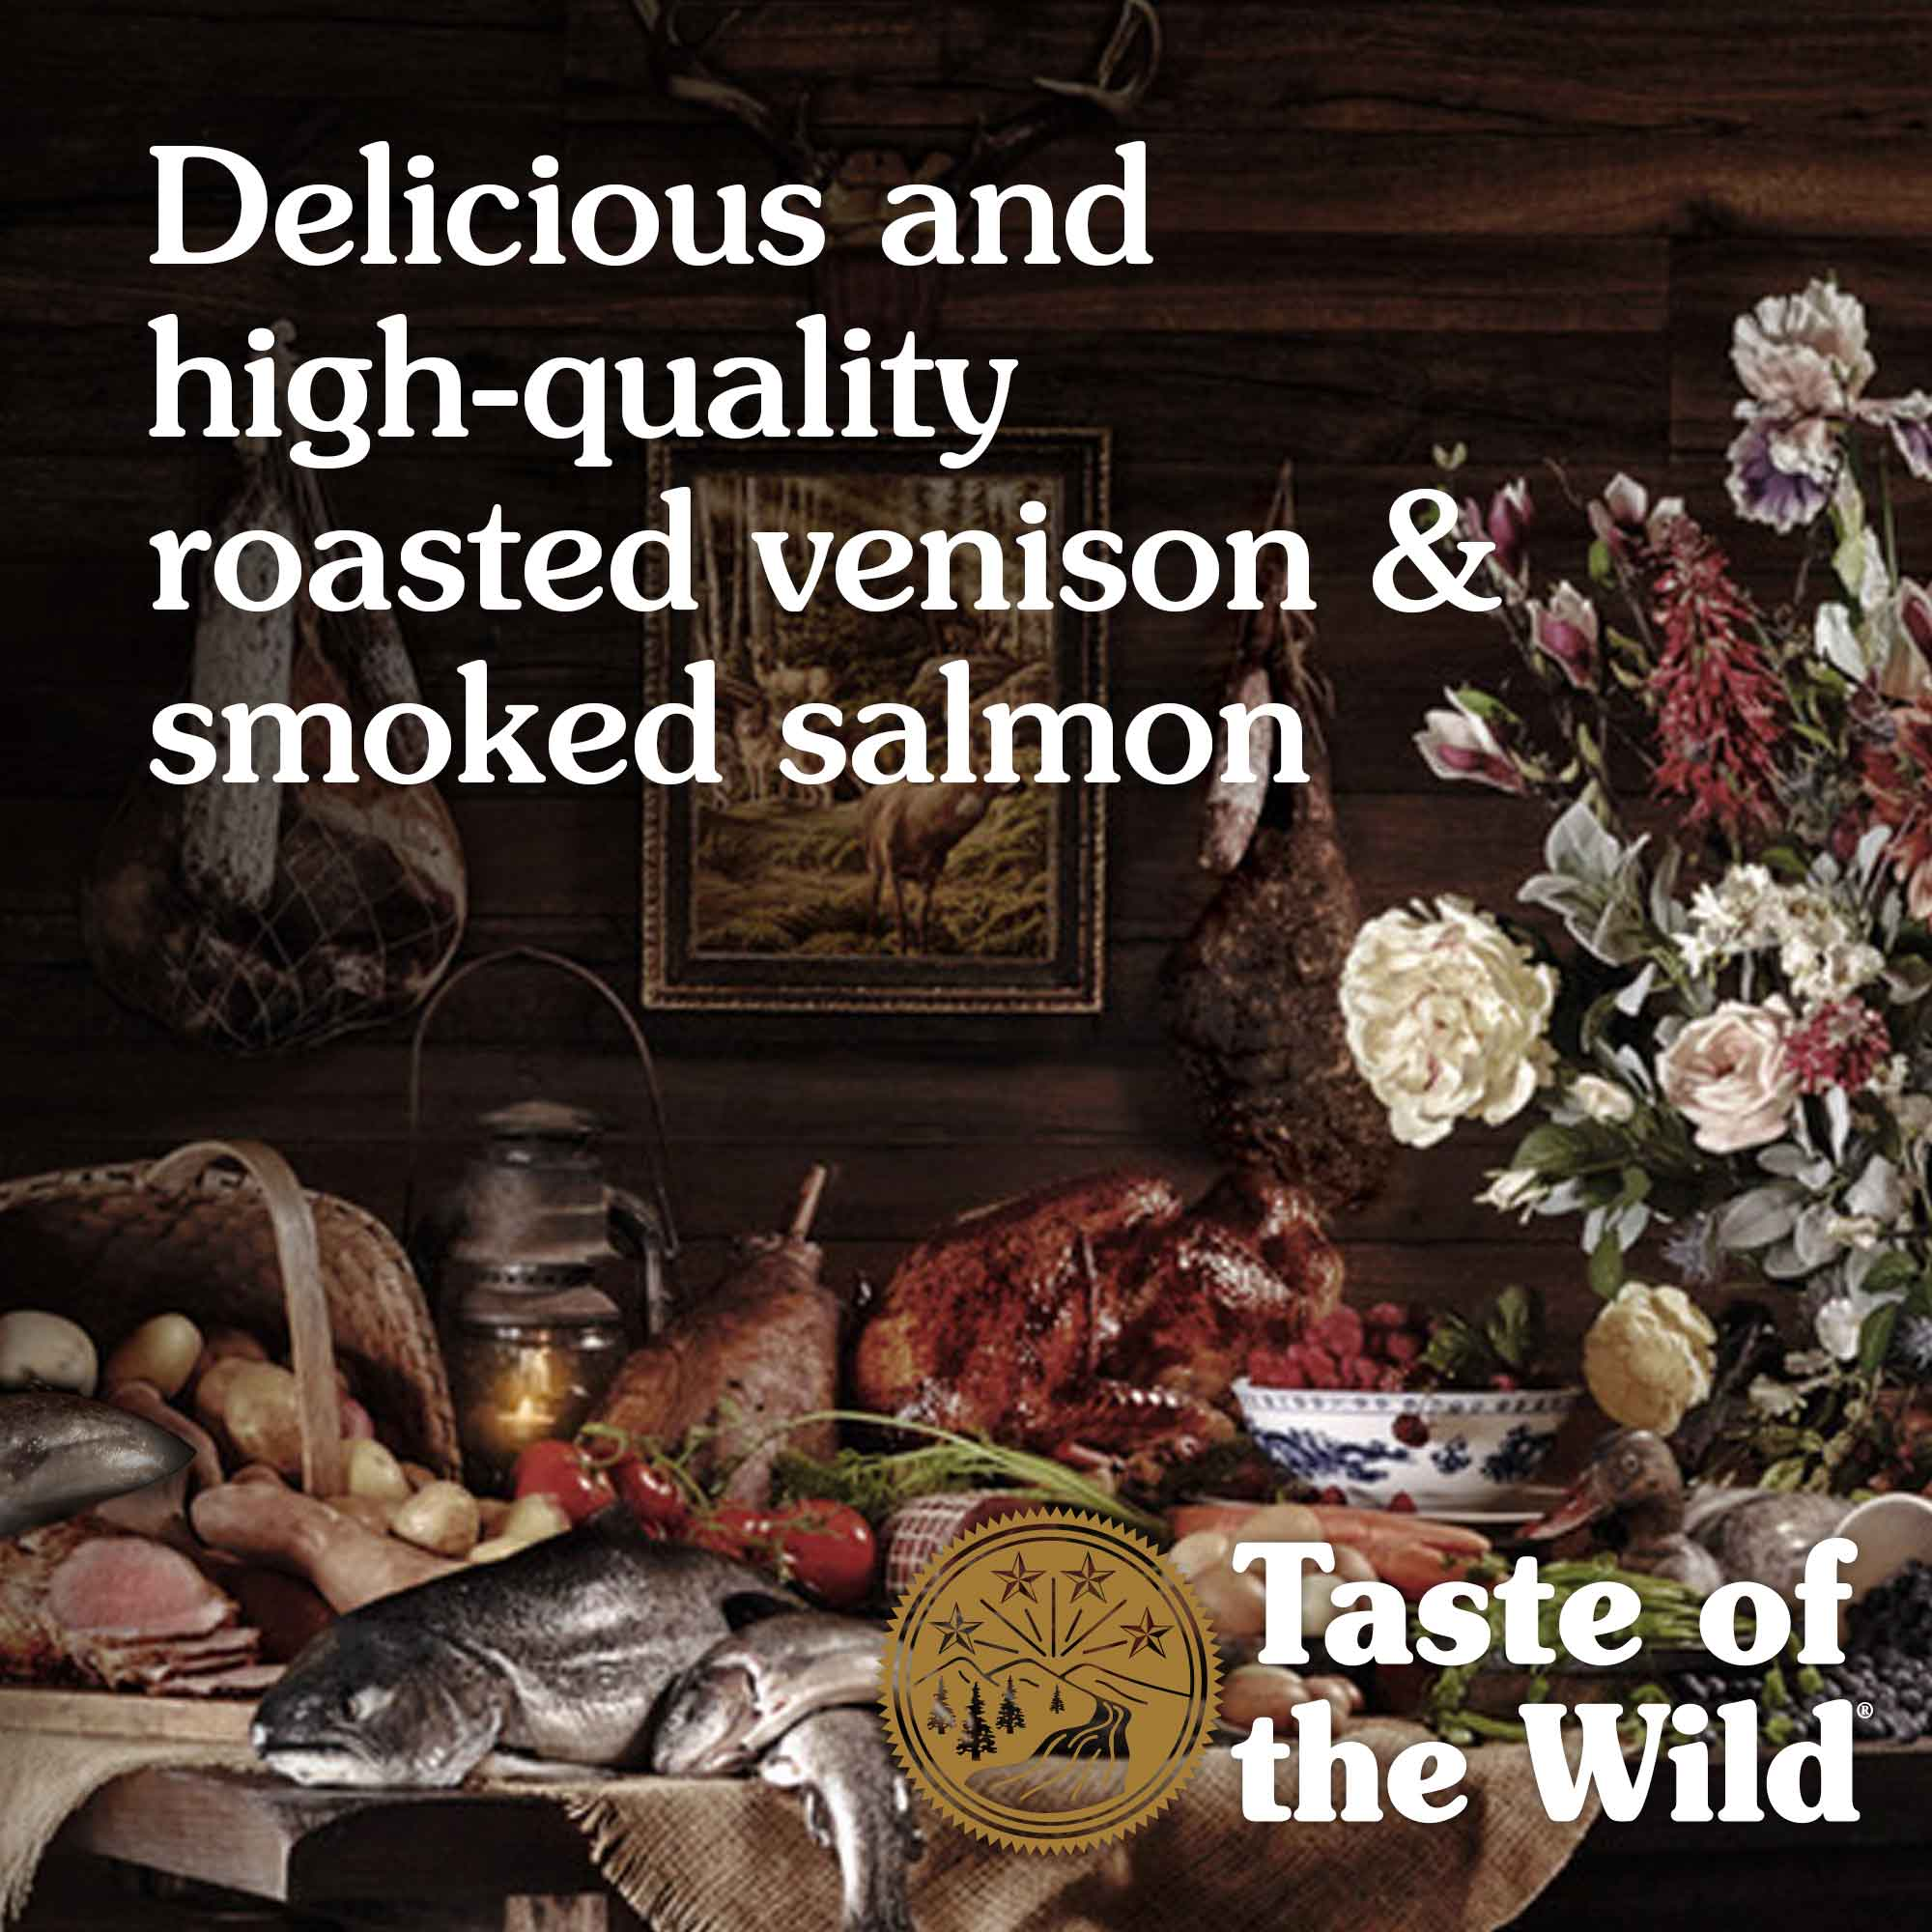 Delicious and high-quality roasted venison & smoked salmon